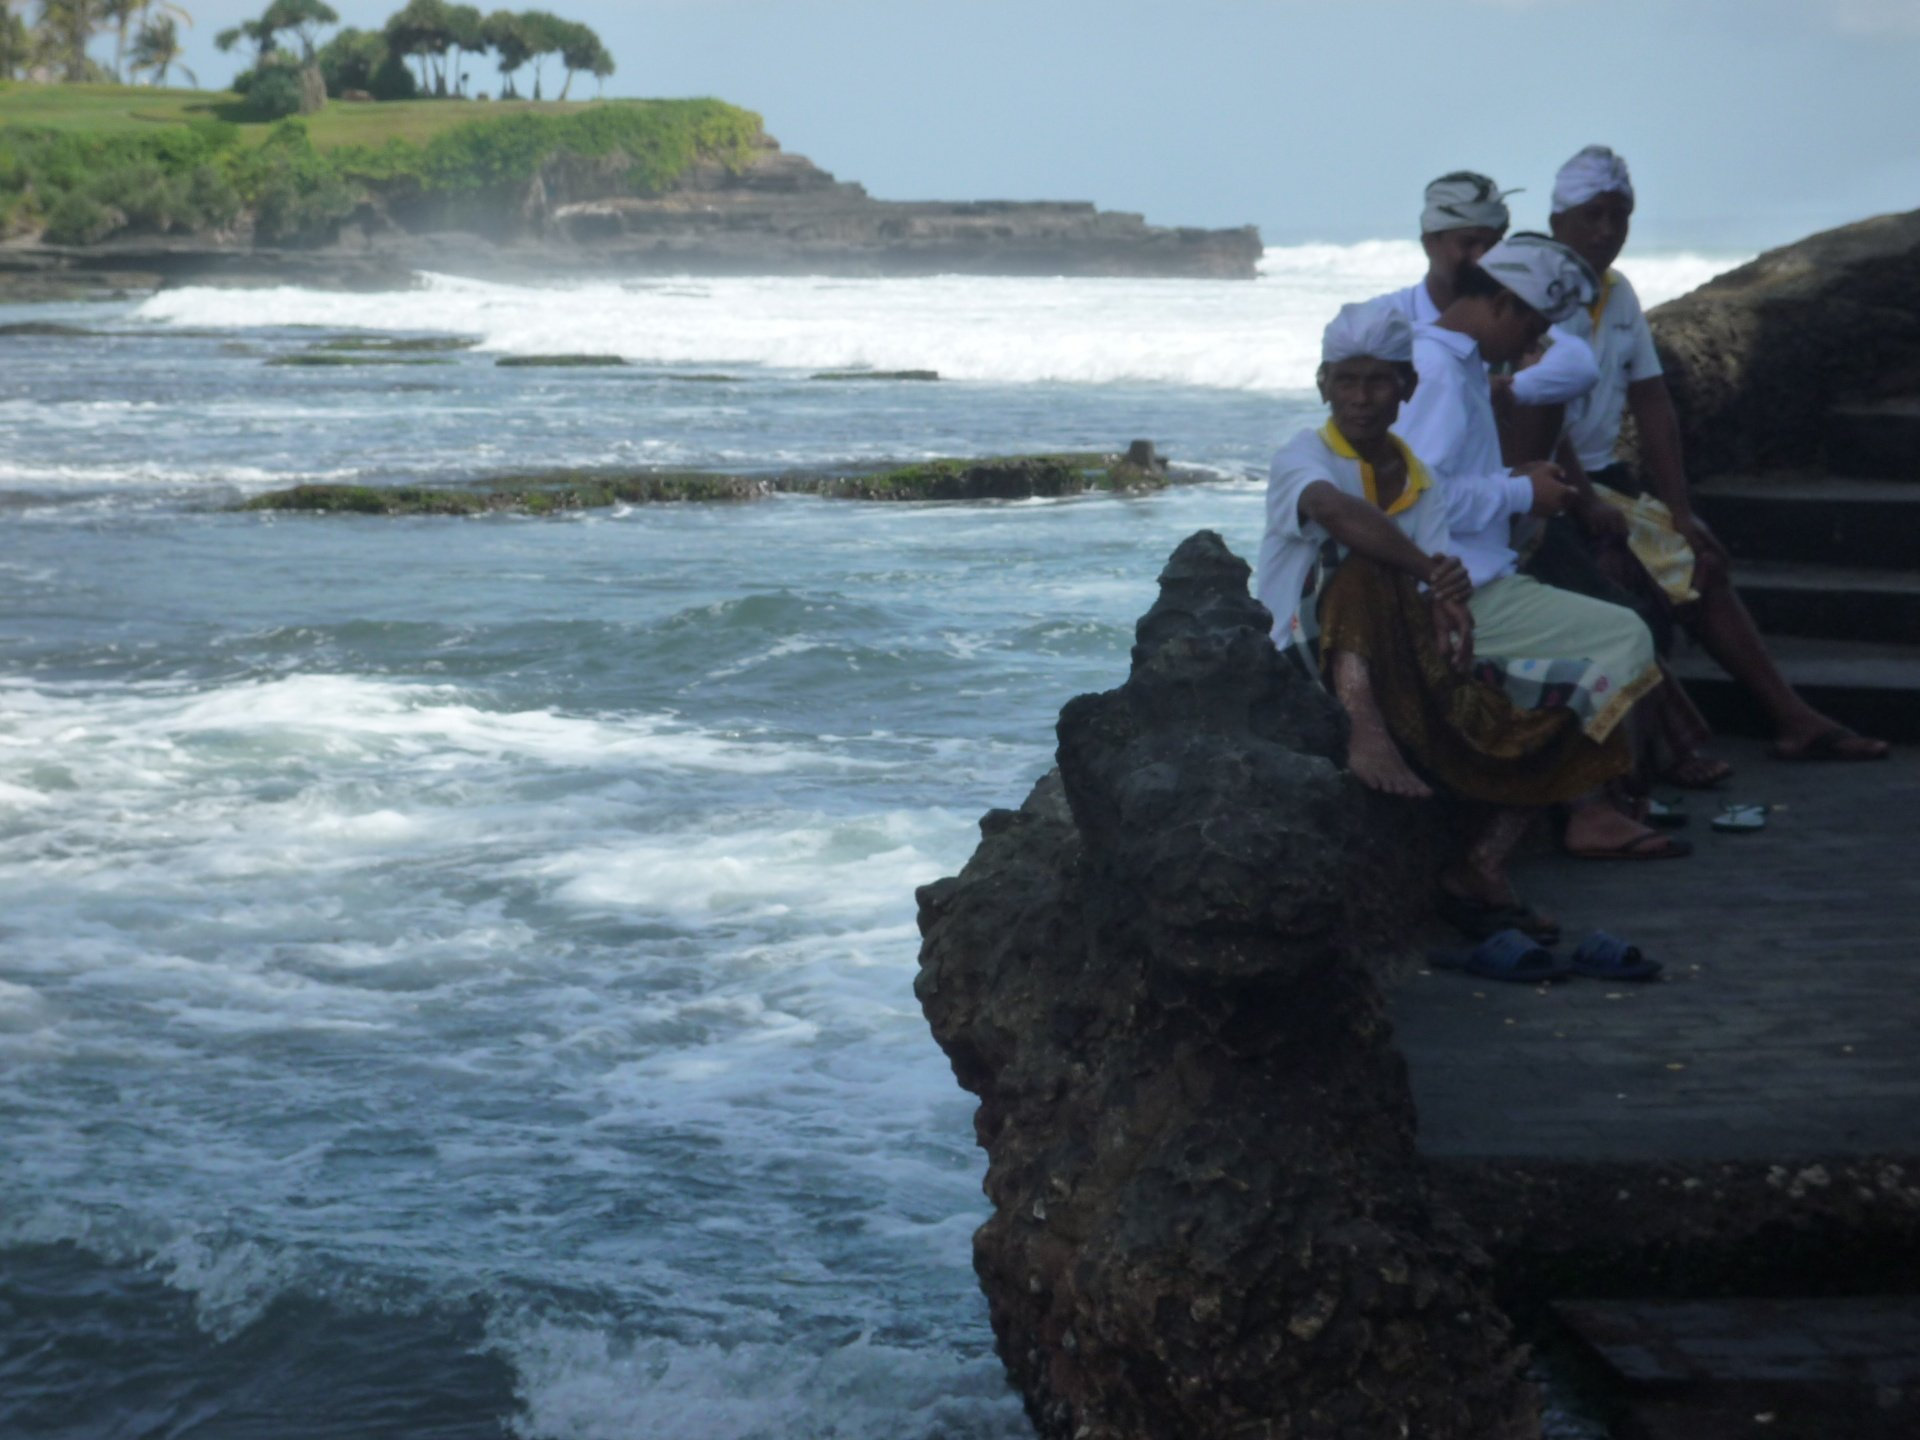 Tania van Megchelen's photo of Canggu